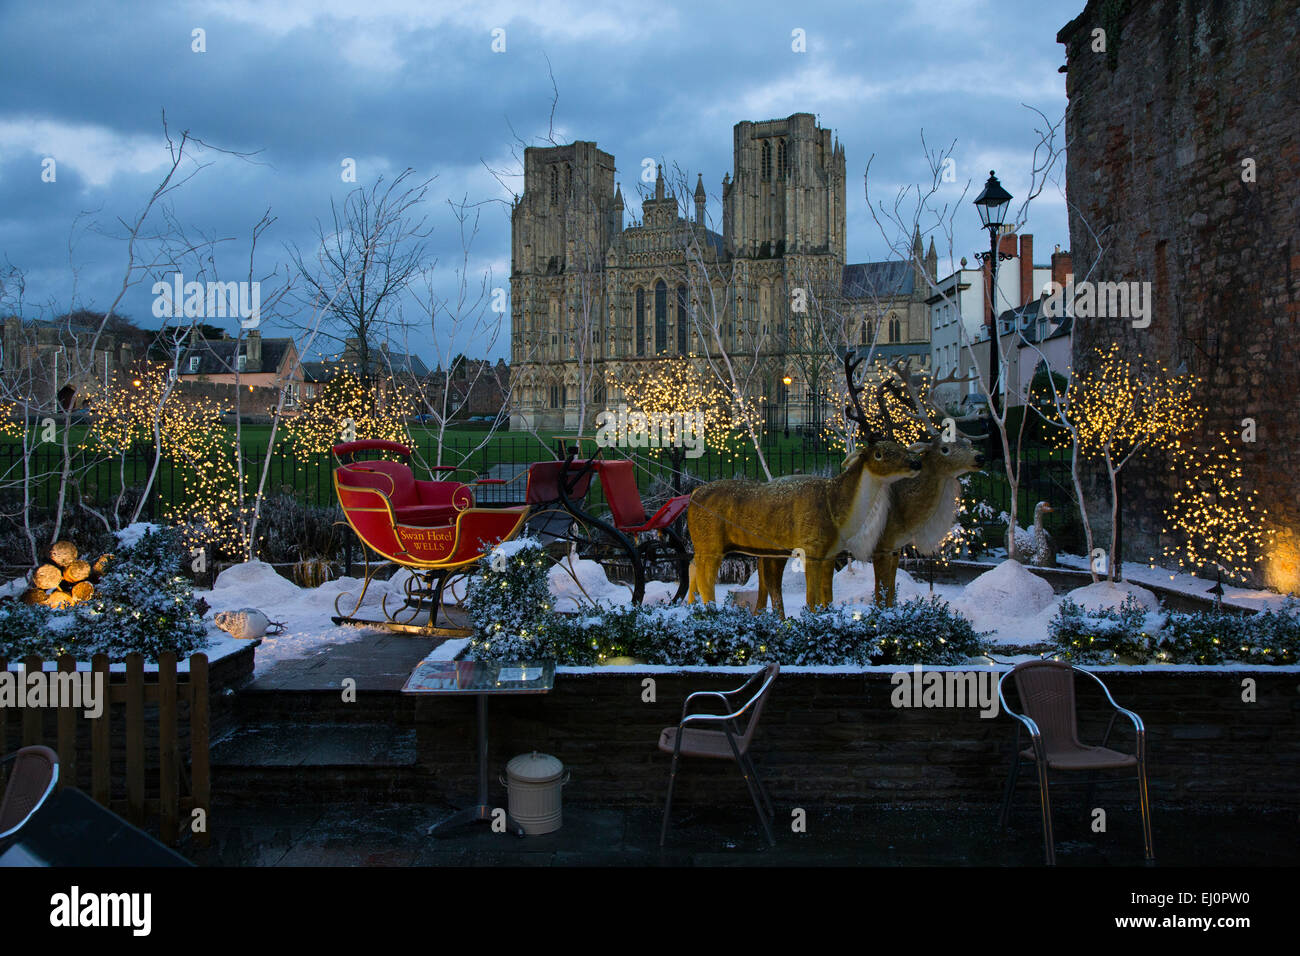 reindeer, slay, sled, artificial, snow, models, Christmas, scene, Wells, Somerset, south-west, England, Britain, - Stock Image